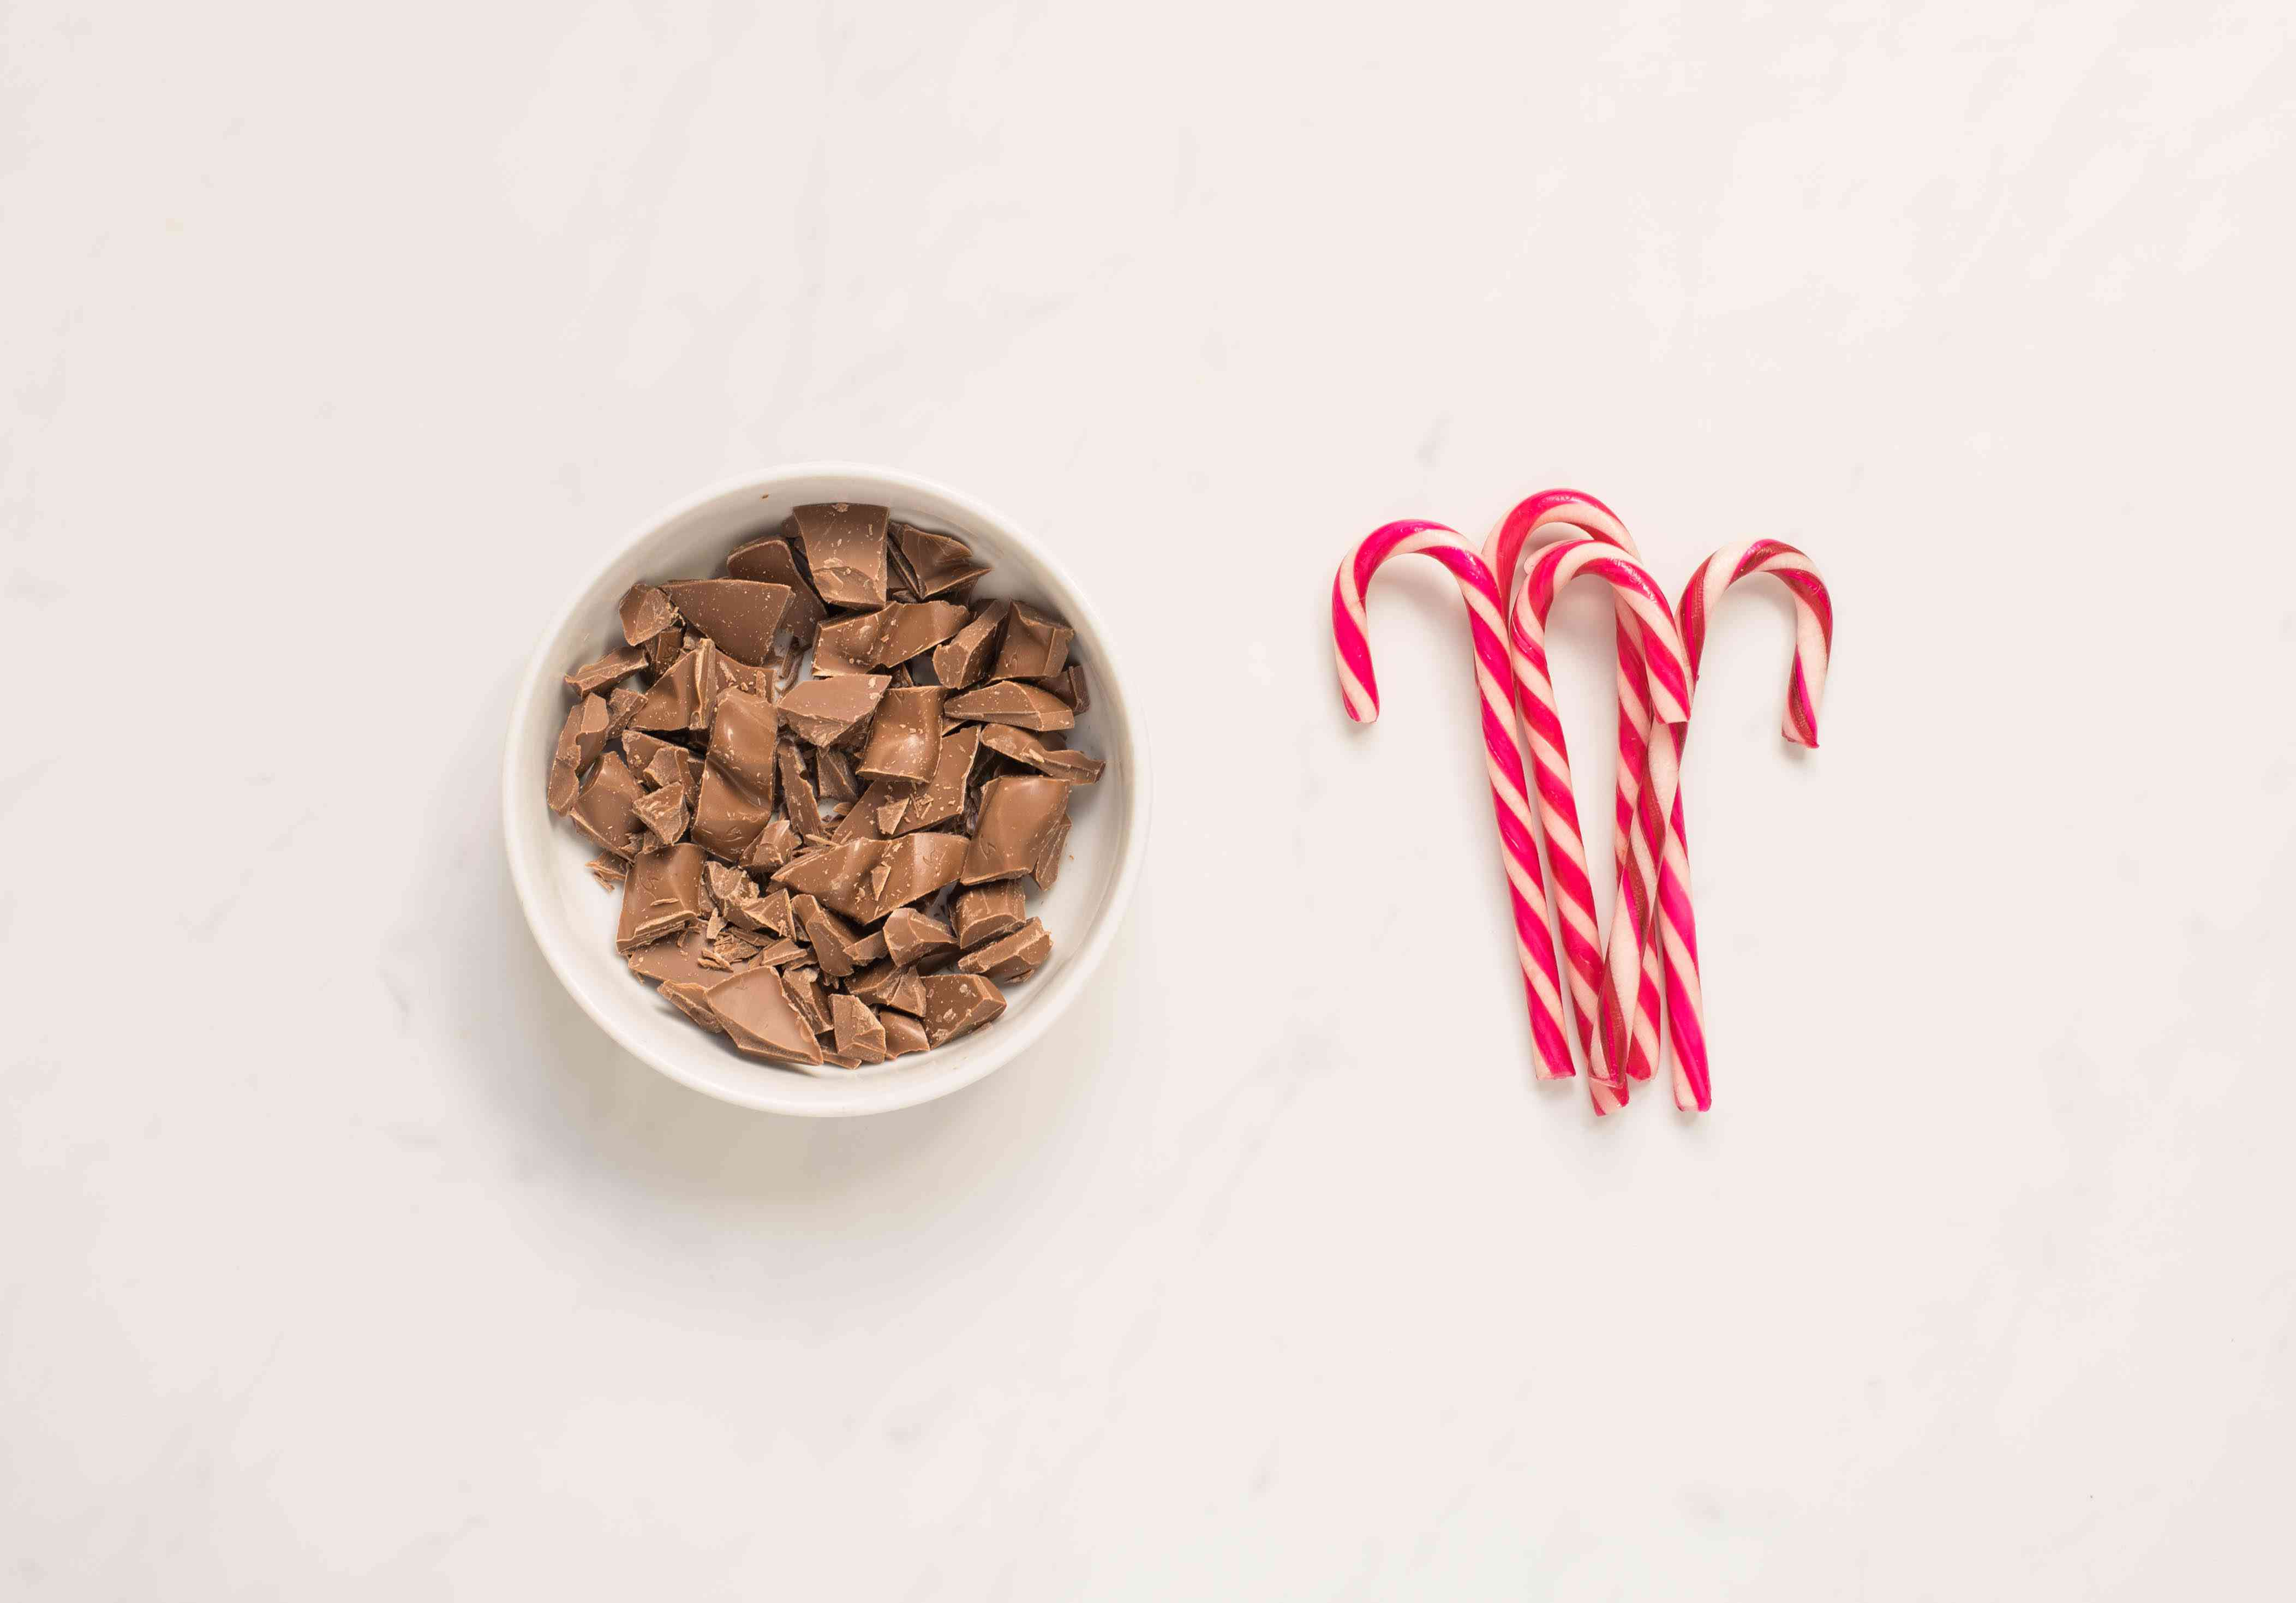 Ingredients for peppermint chocolate spoons